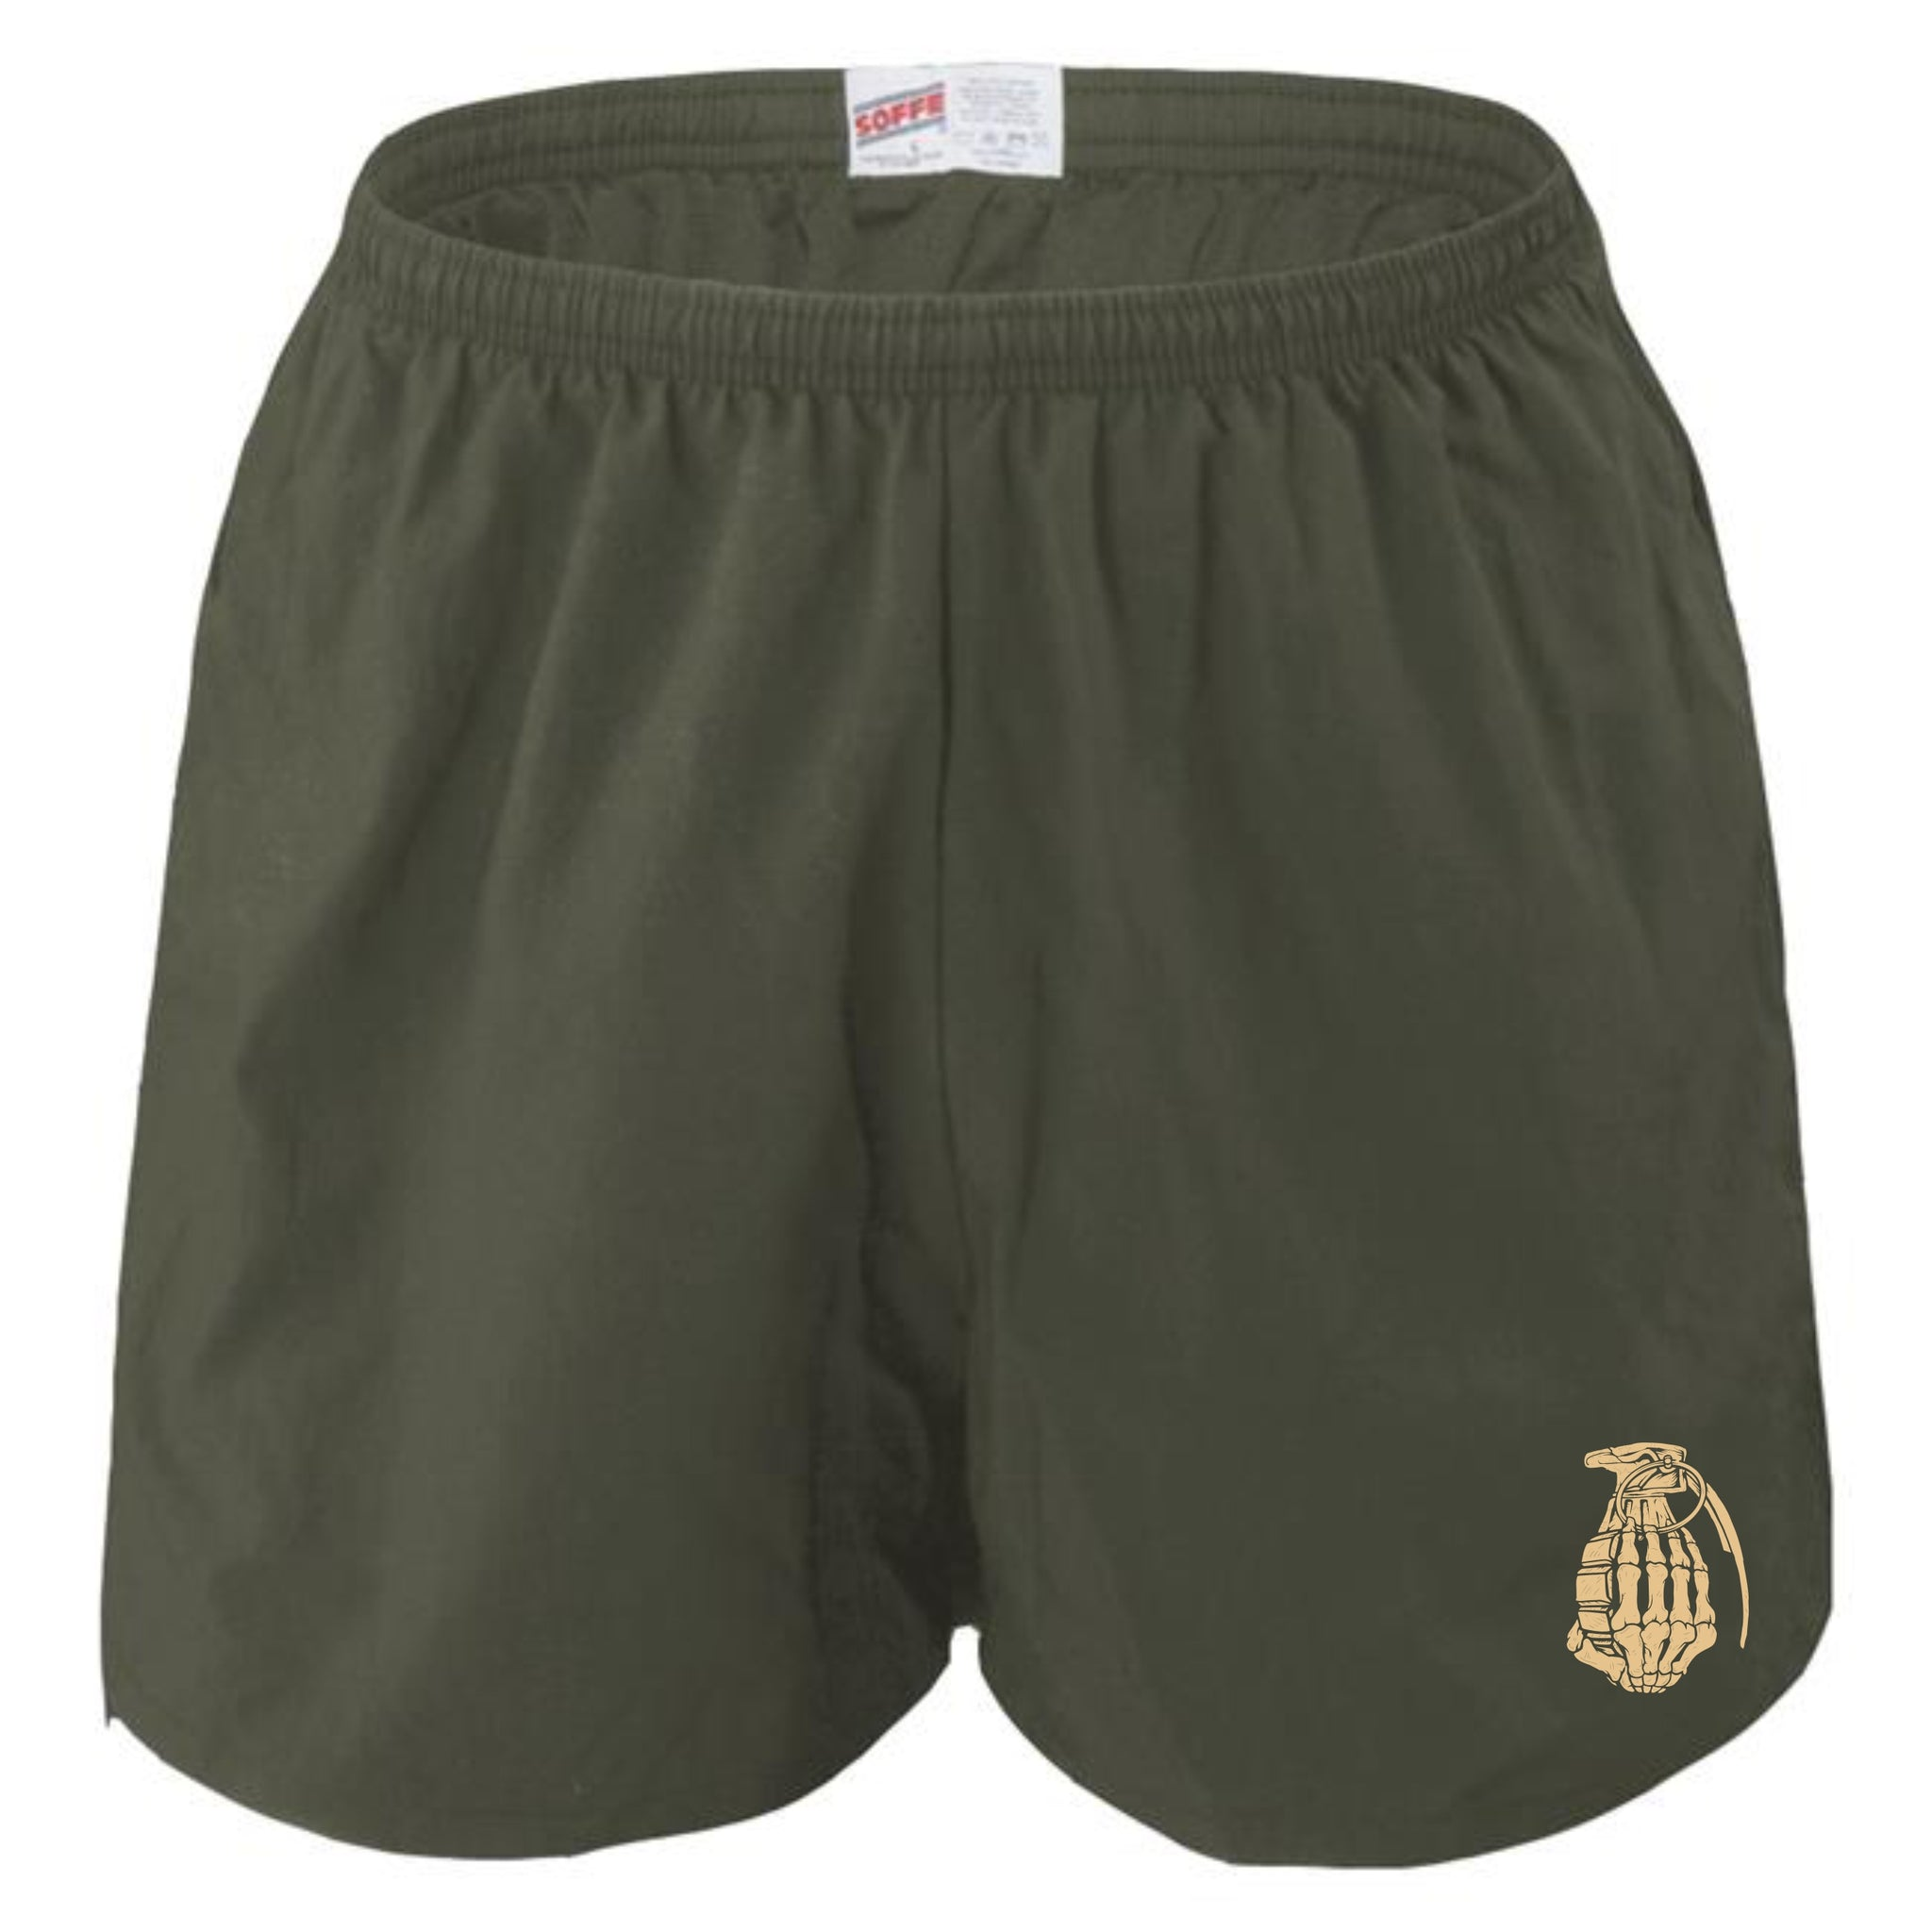 OD Green Performance Shorts